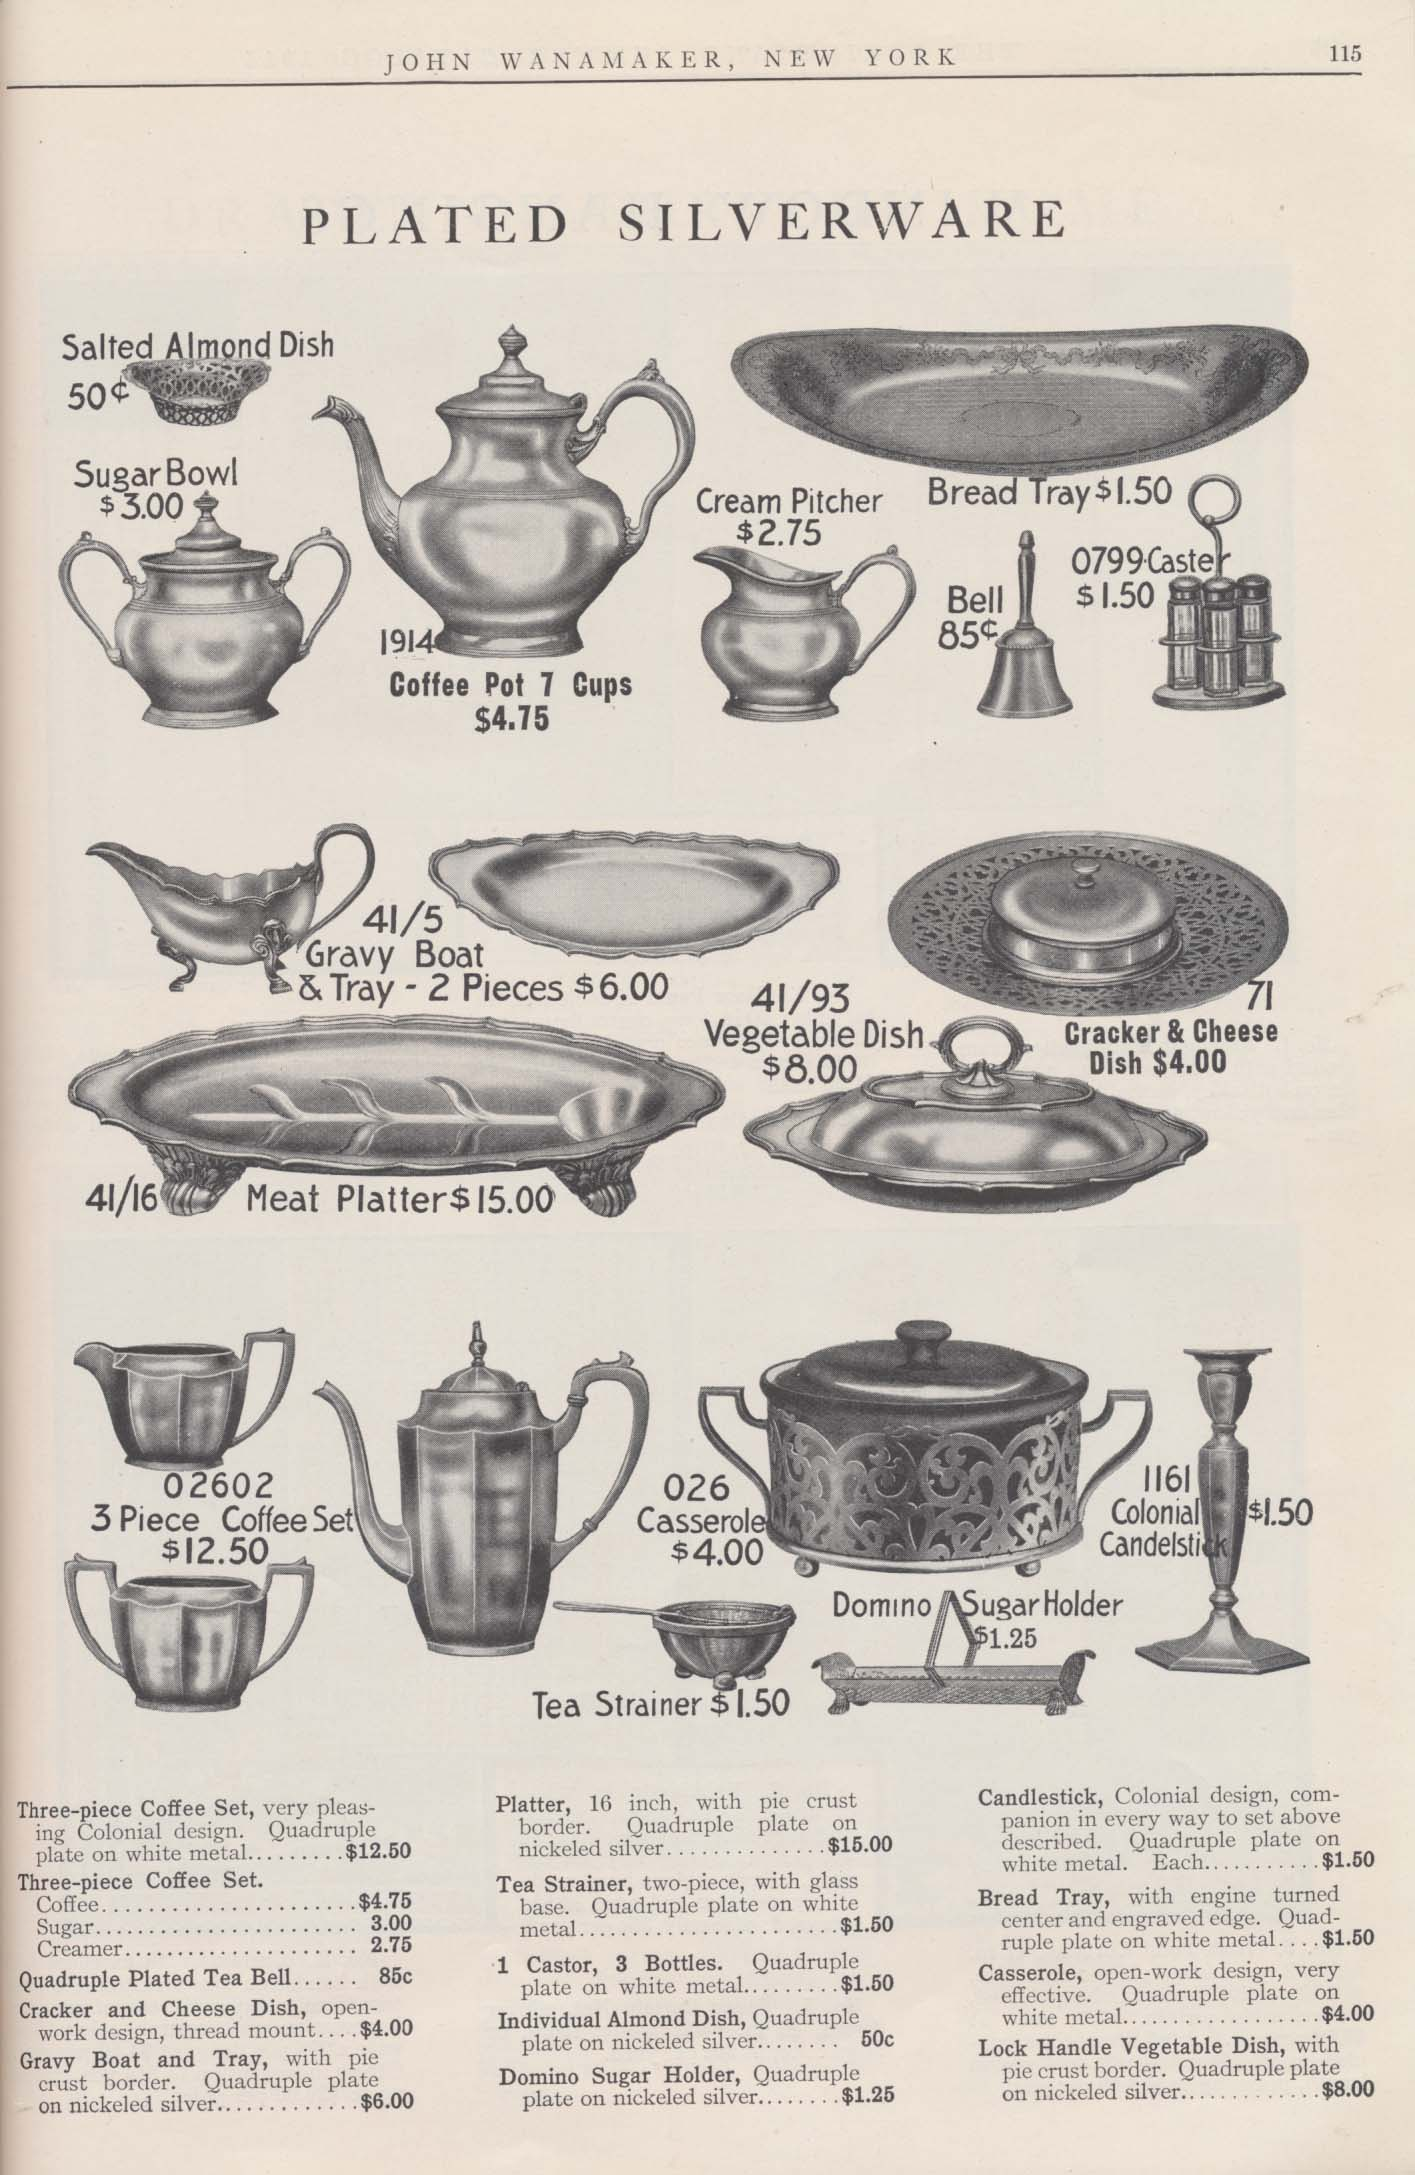 plated silverware including coffee sets, tea strainer, tea bell, dishes, trays, platter, casserole, candlestick, etc.